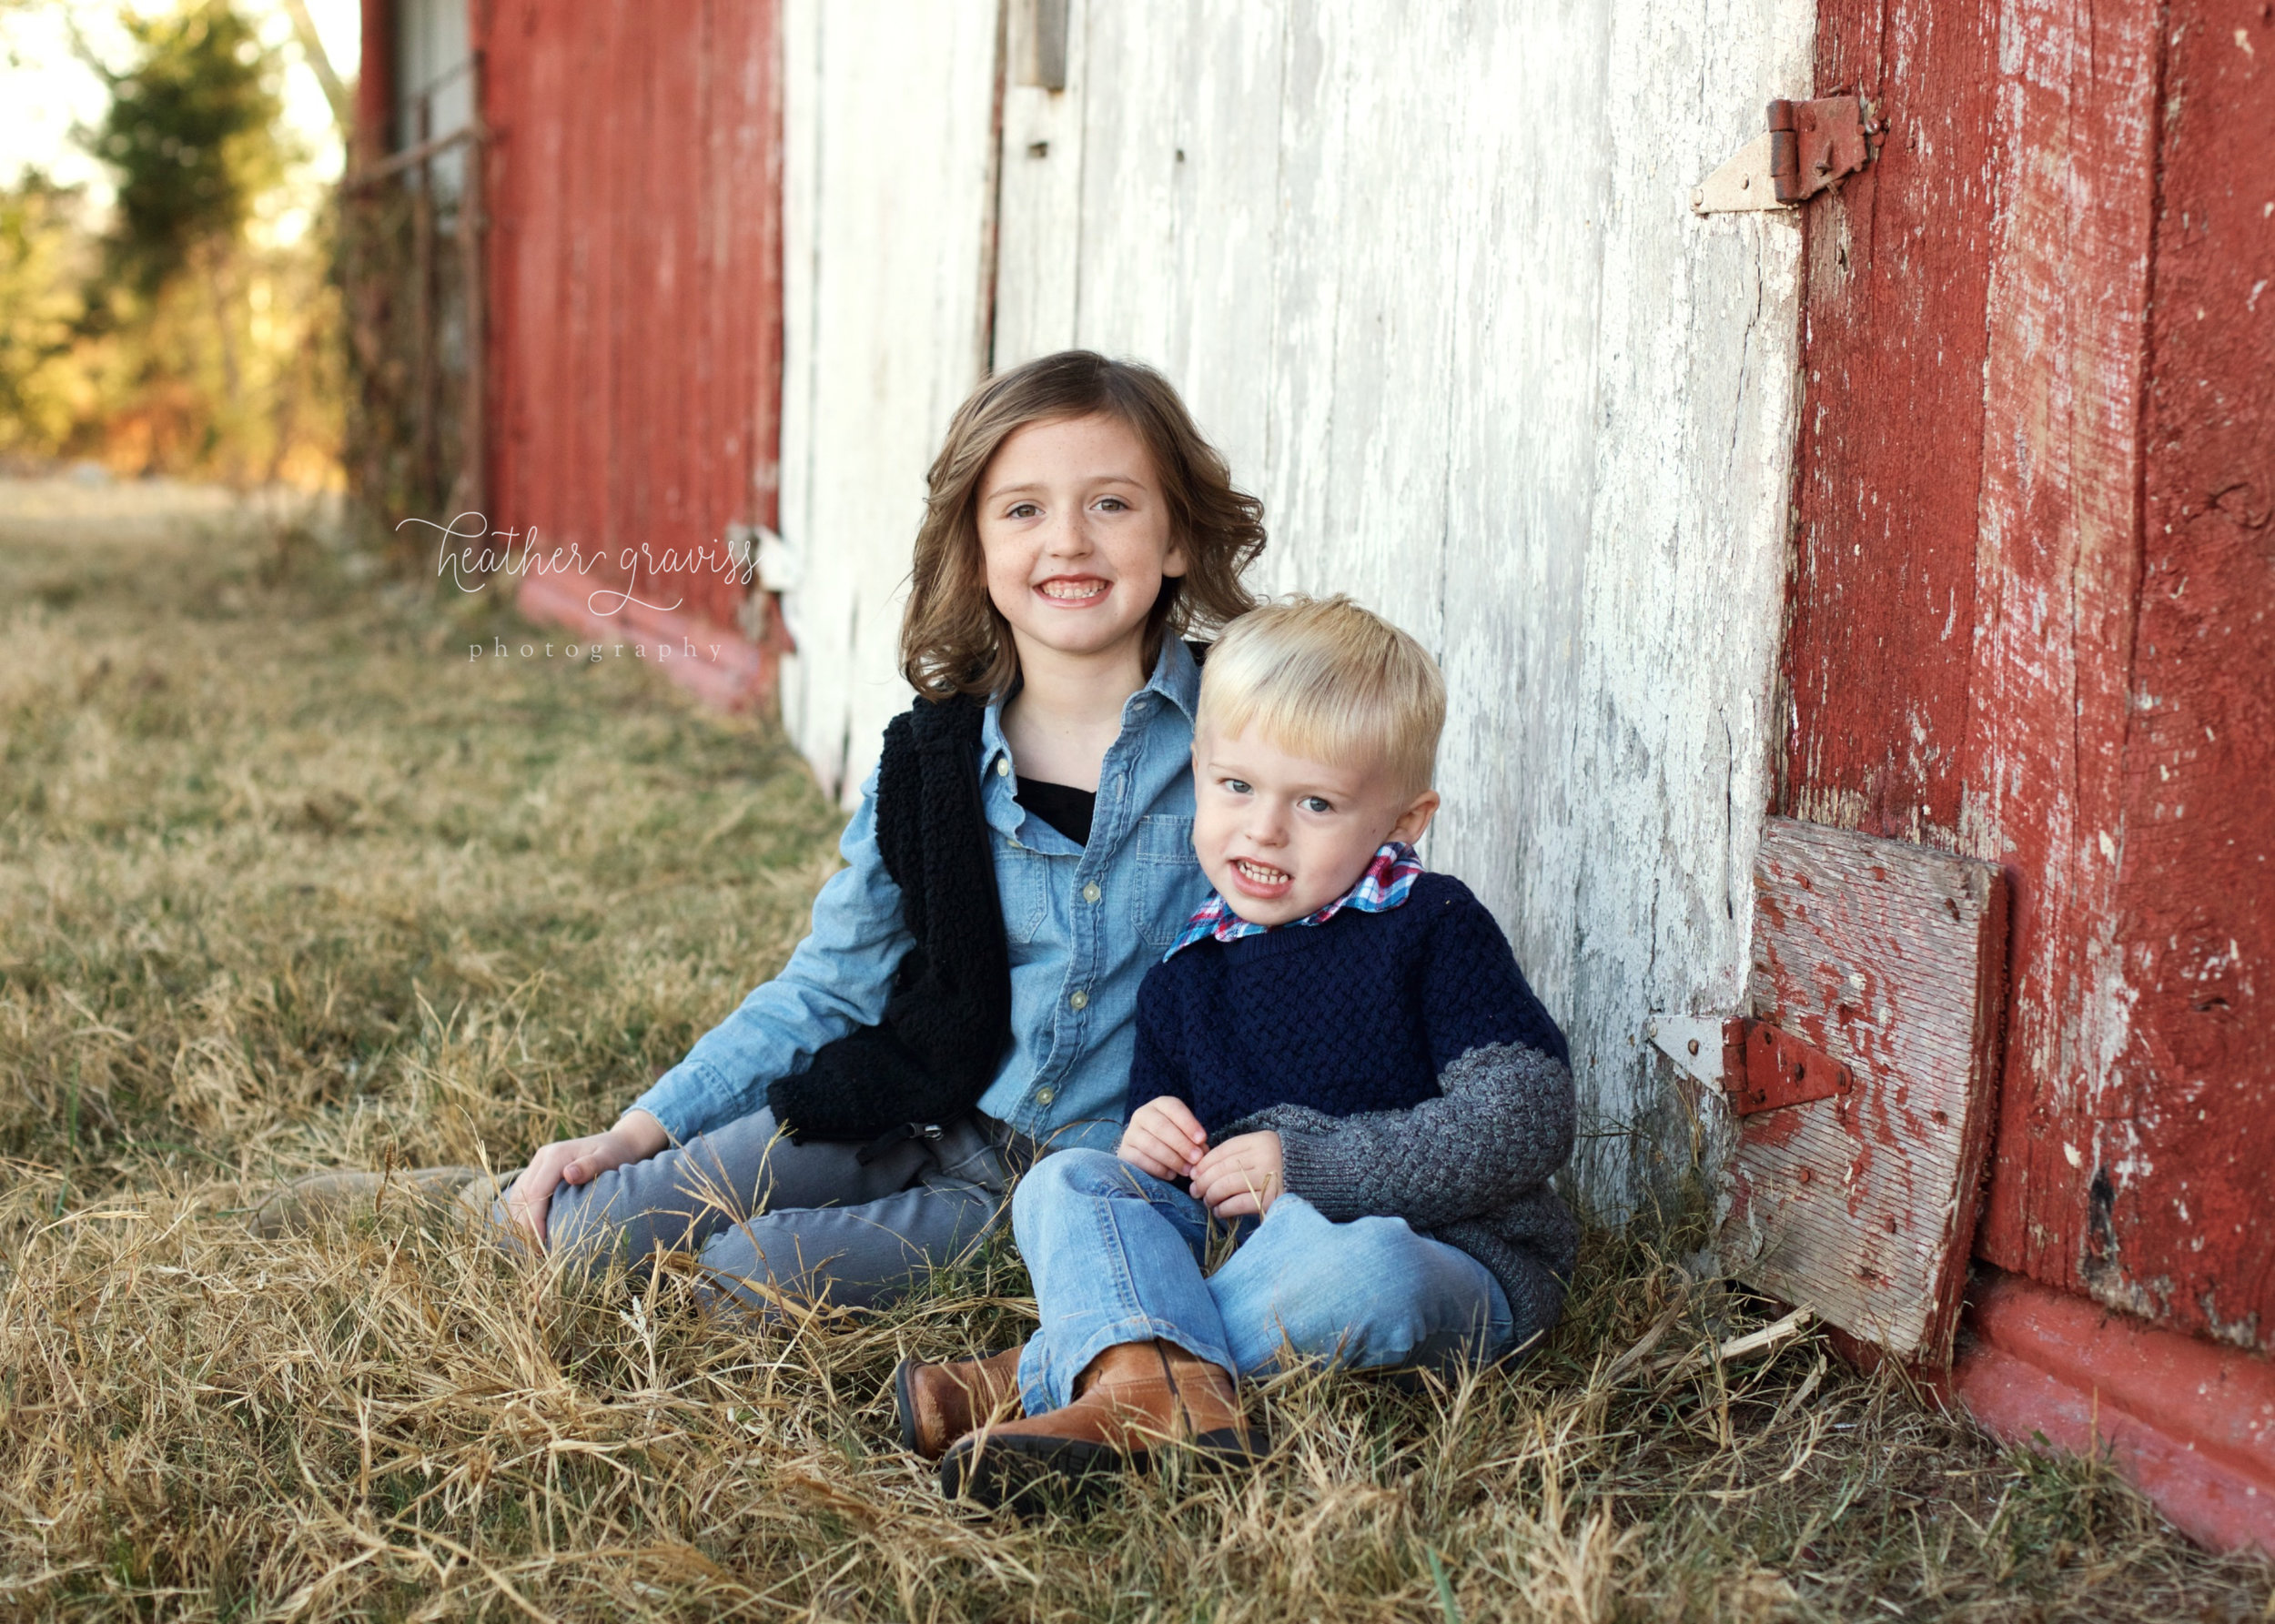 kids-barn-door.jpg